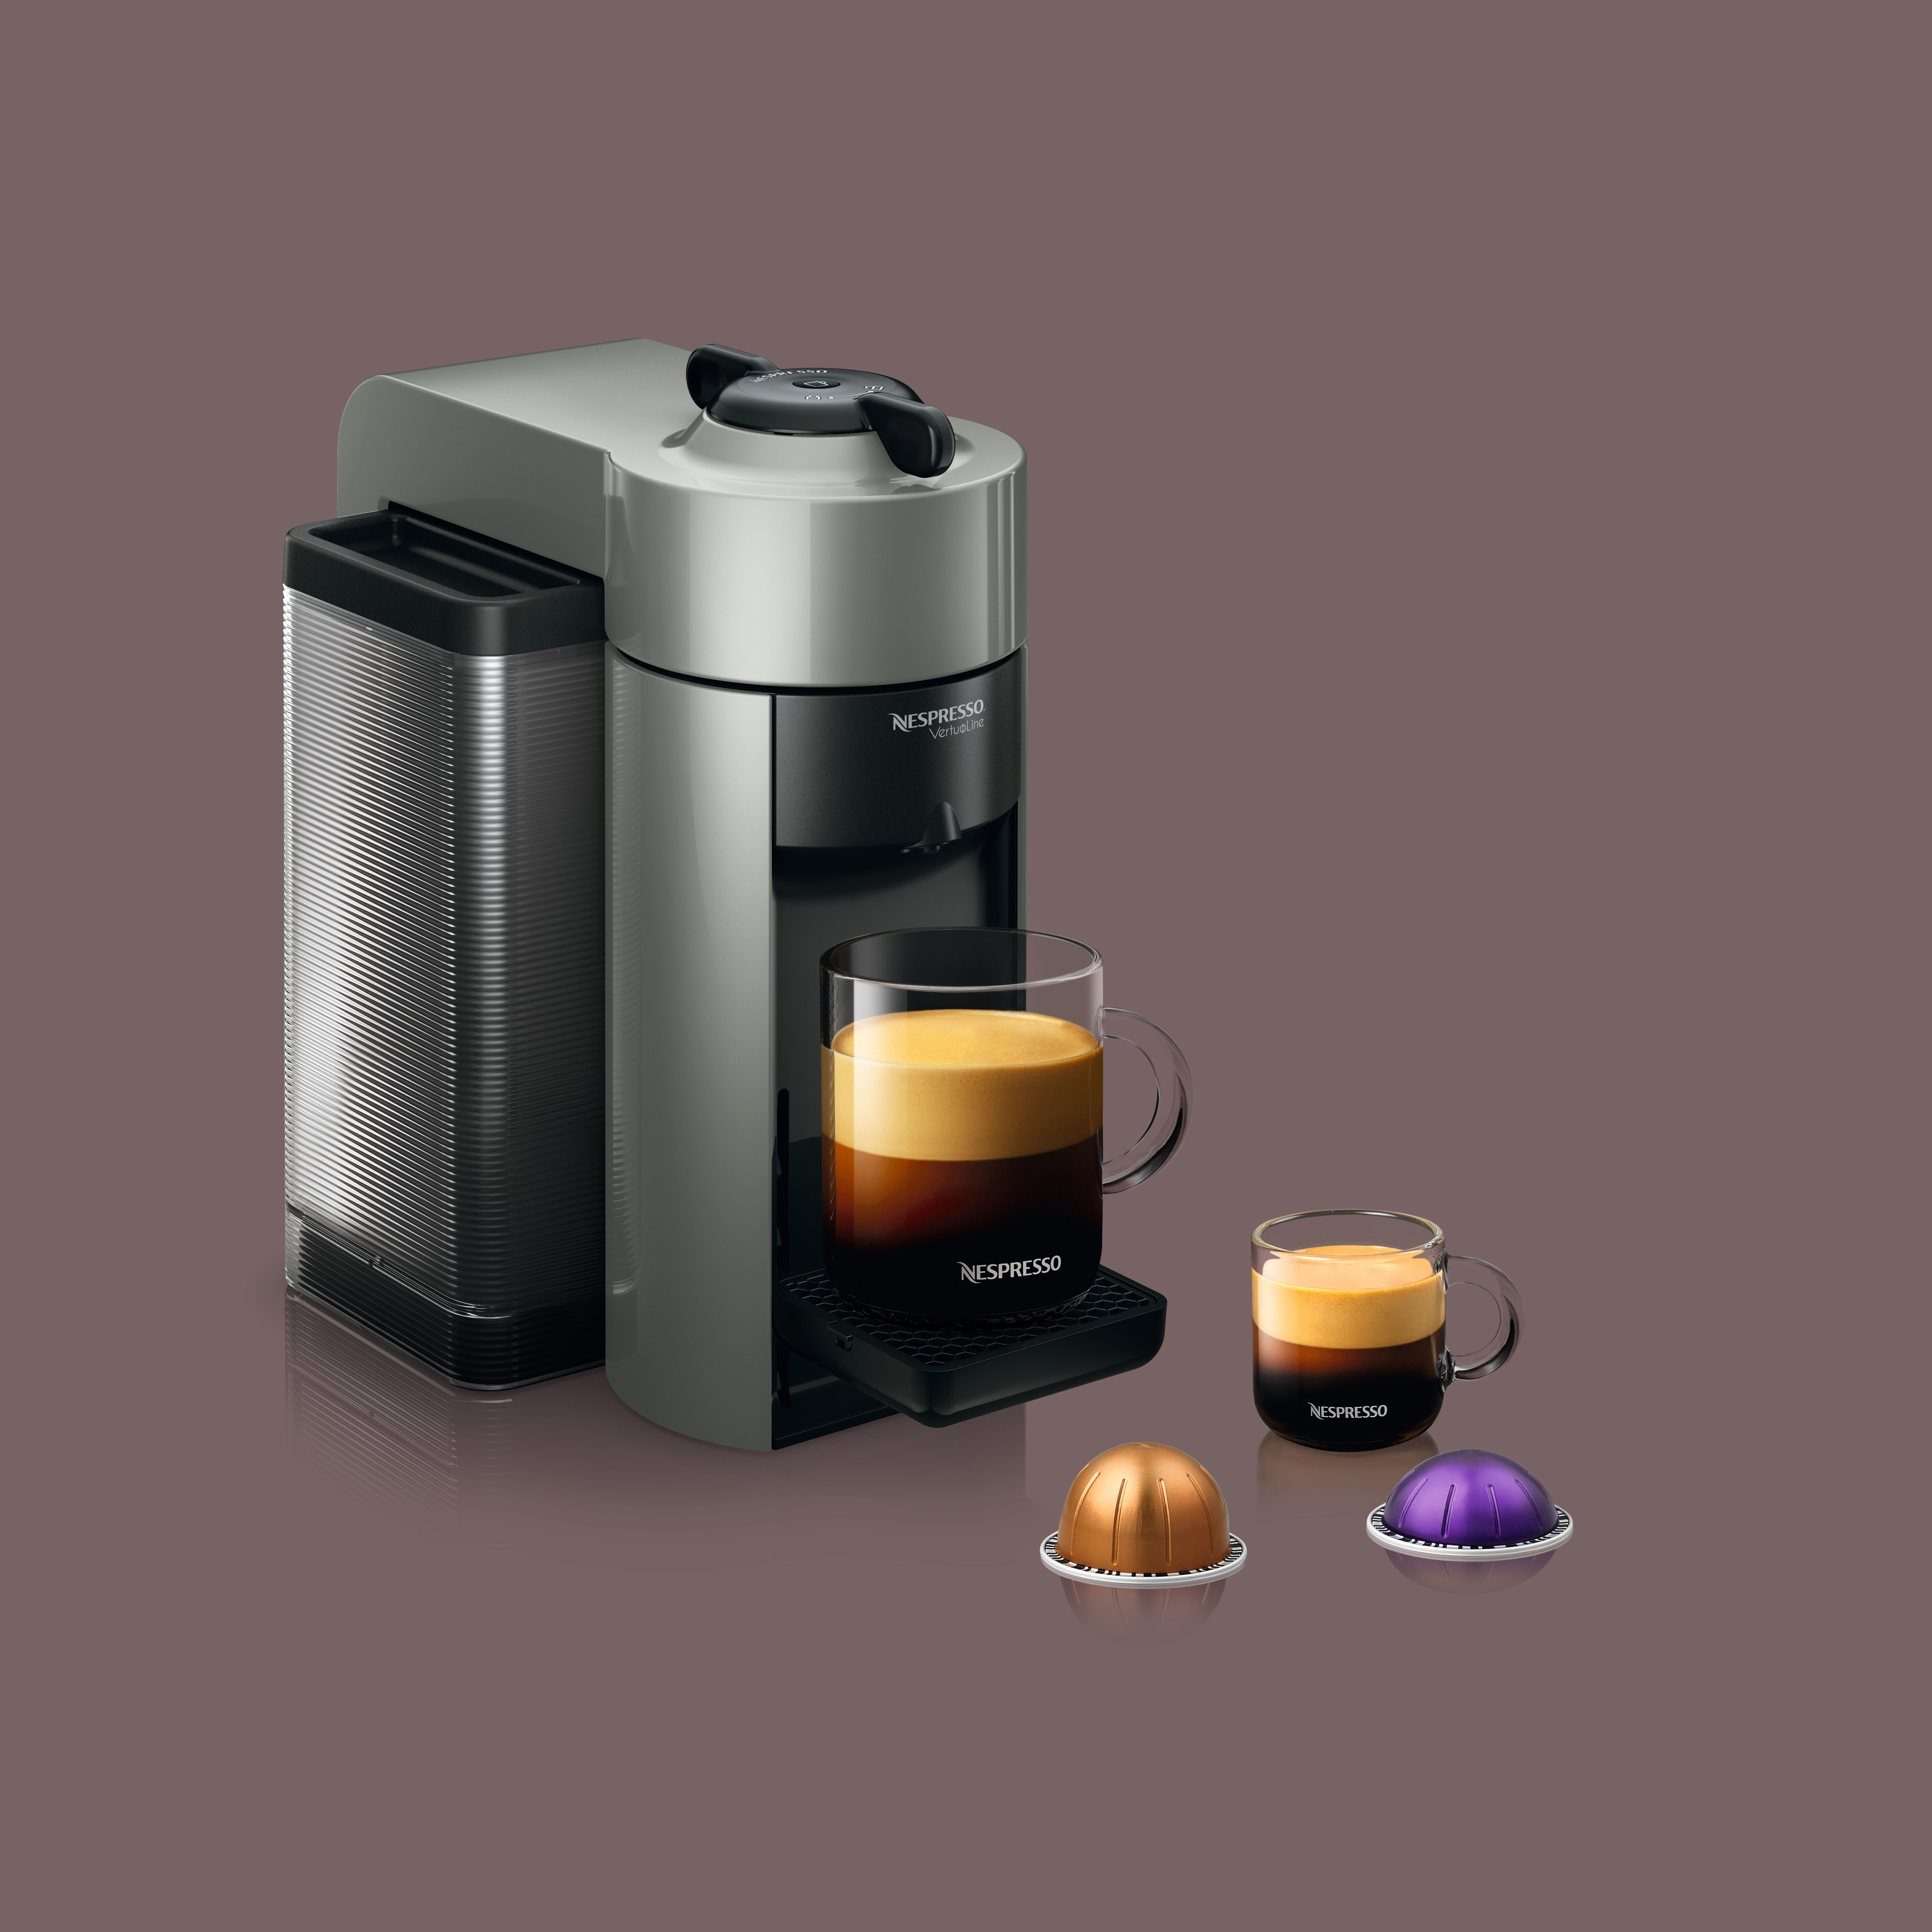 The 6 Best Coffee Maker And Espresso Machine Combos To Buy